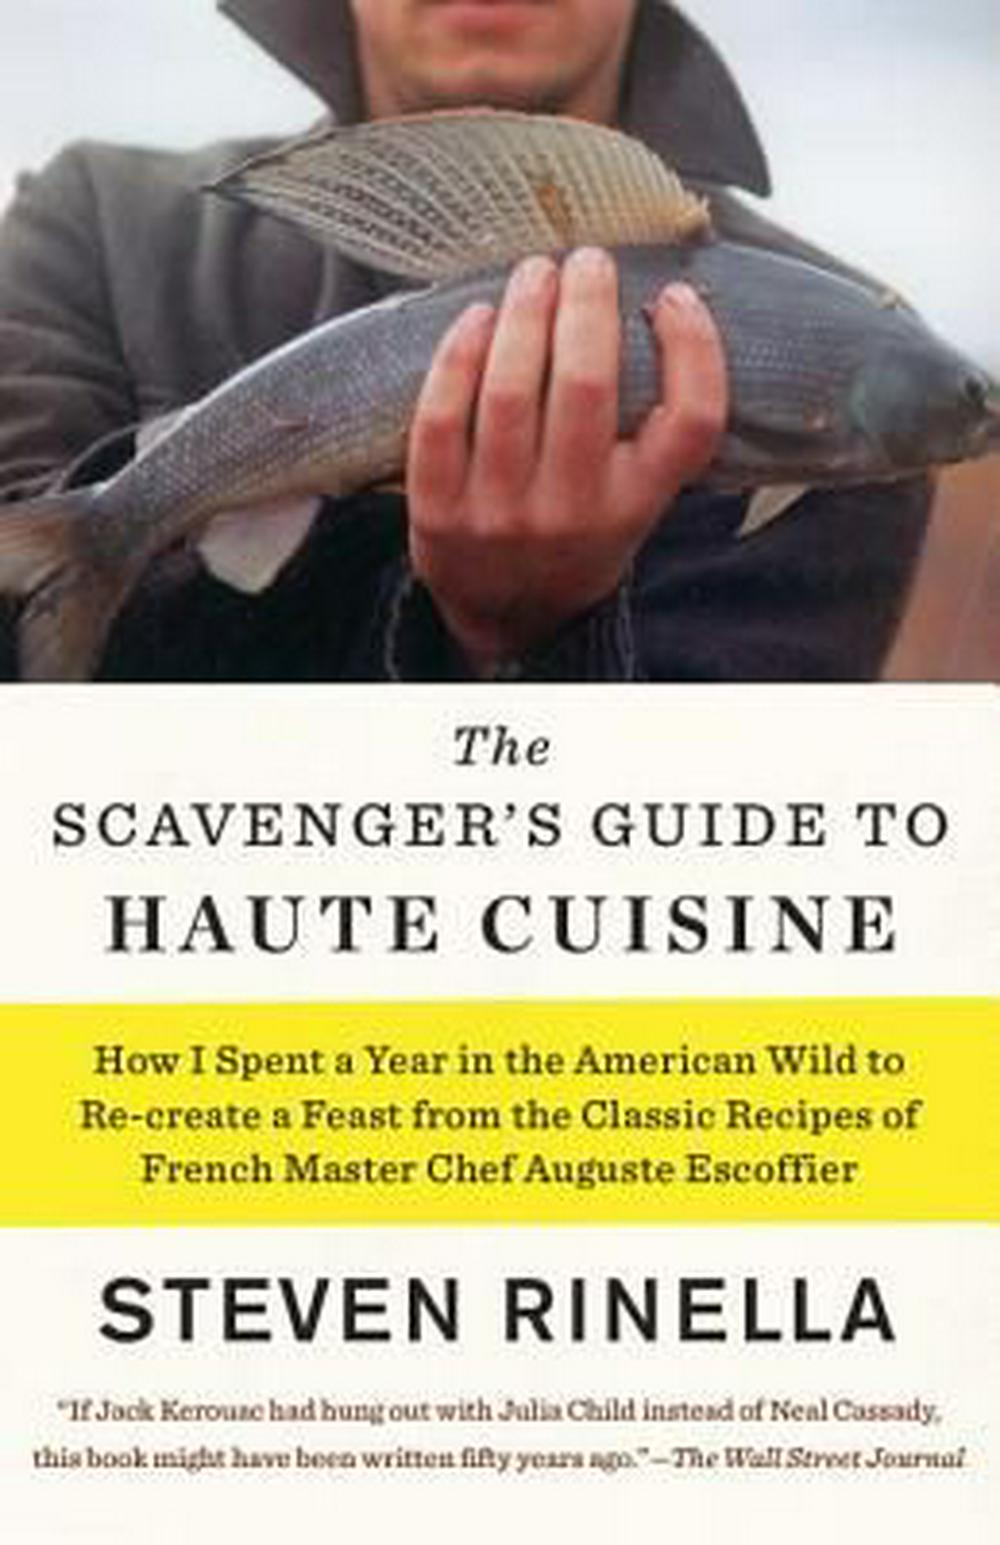 The Scavenger's Guide to Haute CuisineI Spent a Year in the American Wild to Re-Creat...